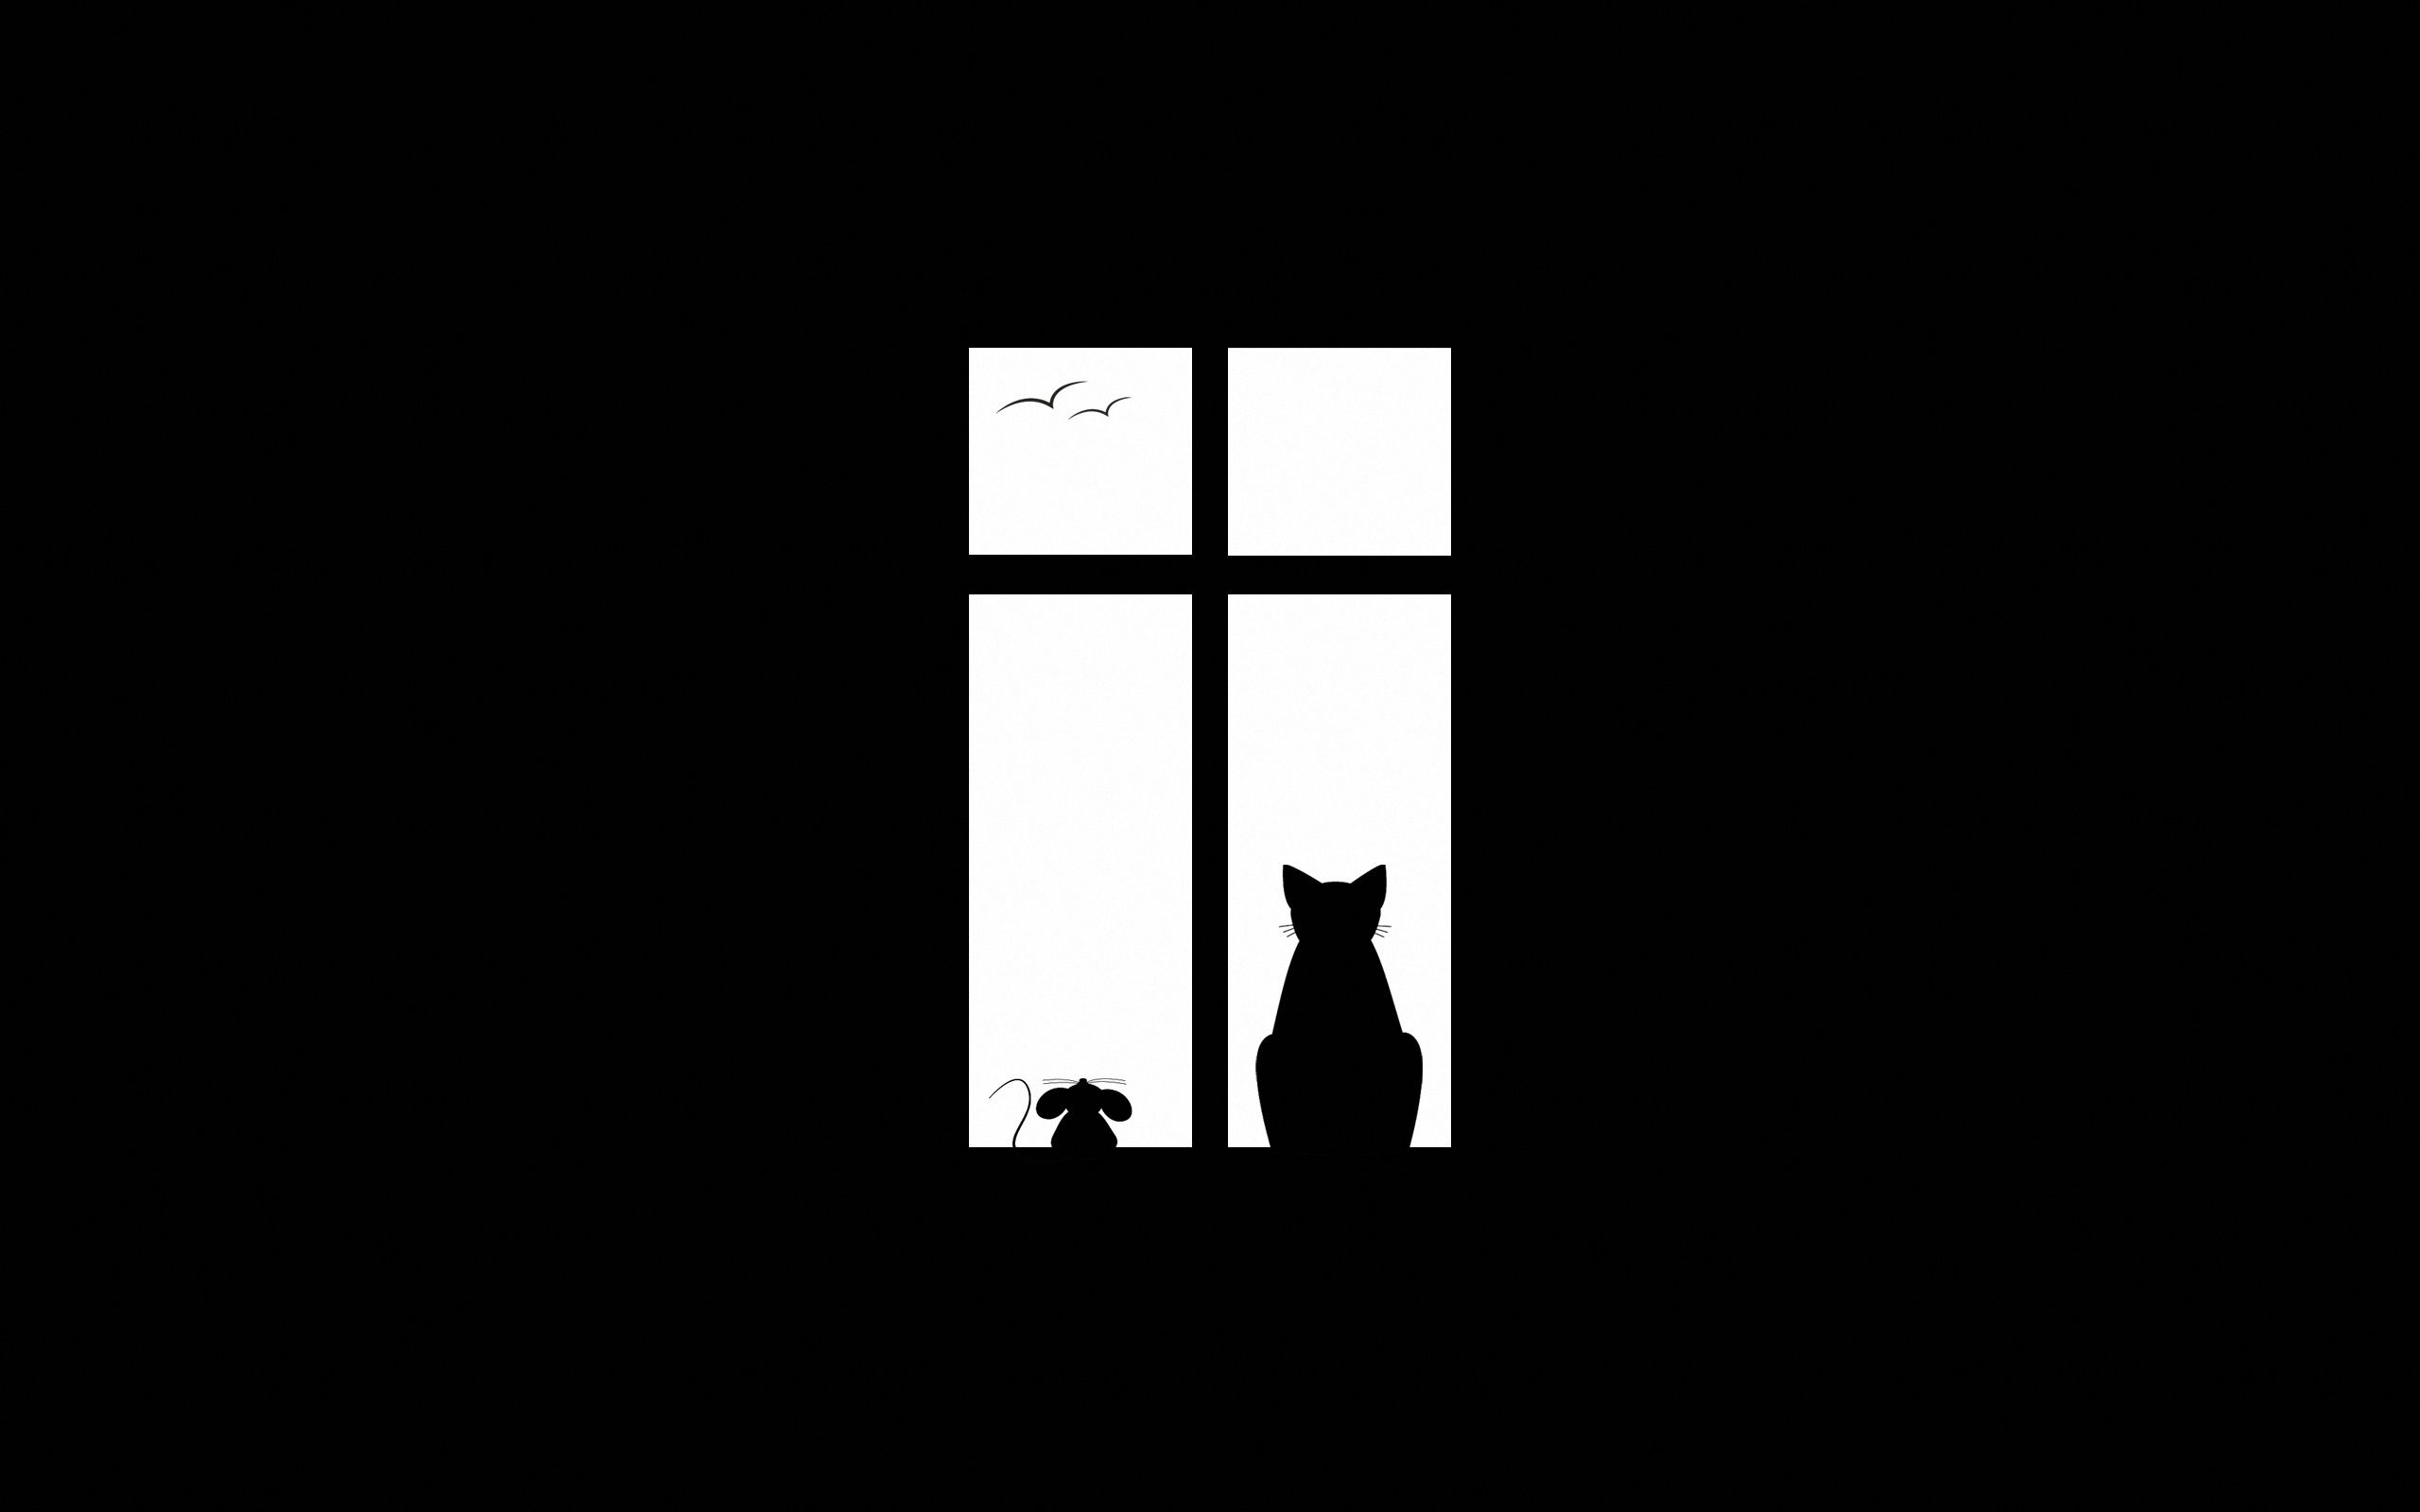 50514 download wallpaper Minimalism, Picture, Silhouette, Cat, Drawing, Window screensavers and pictures for free